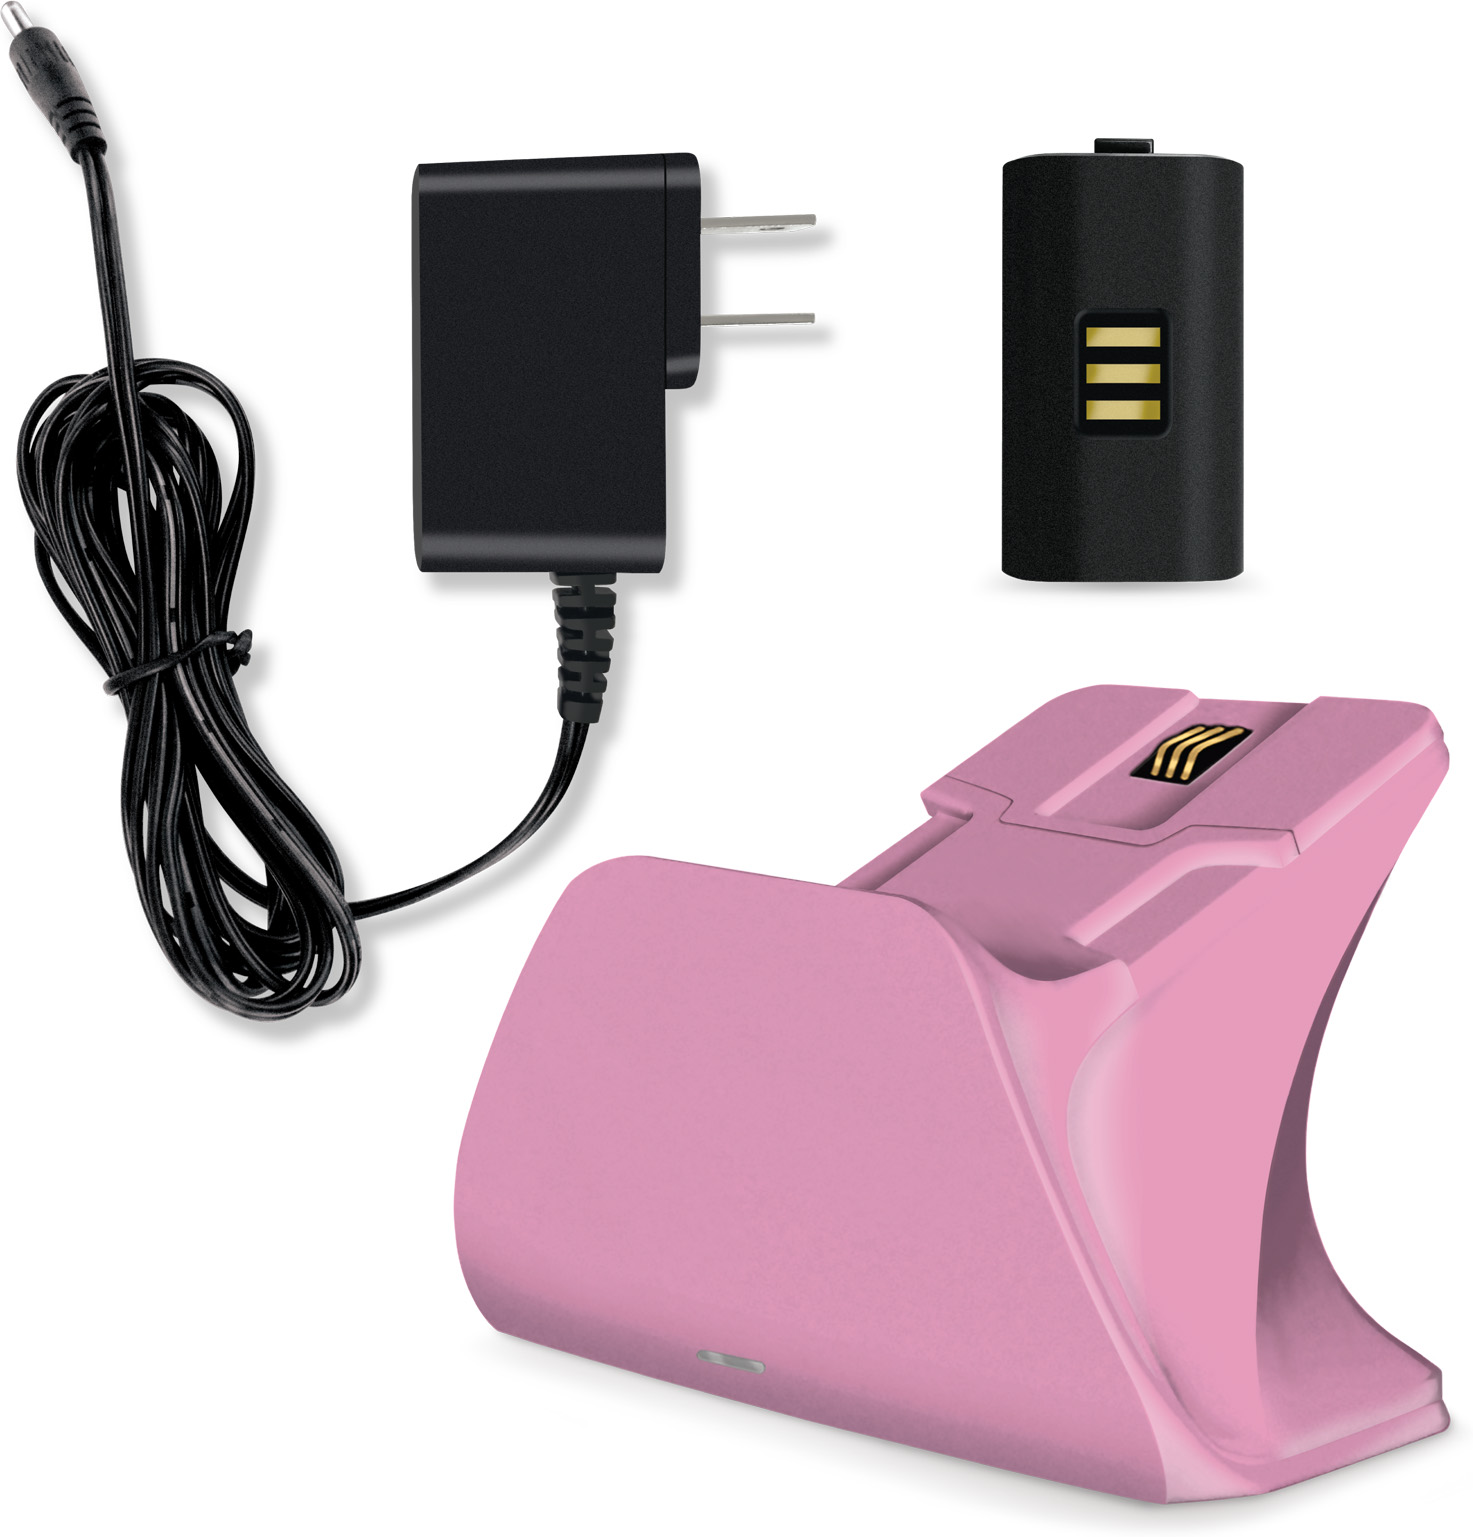 RW57wj?ver=1138 - Controller Gear Xbox Design Lab Pro Charging Stand (Retro Pink)